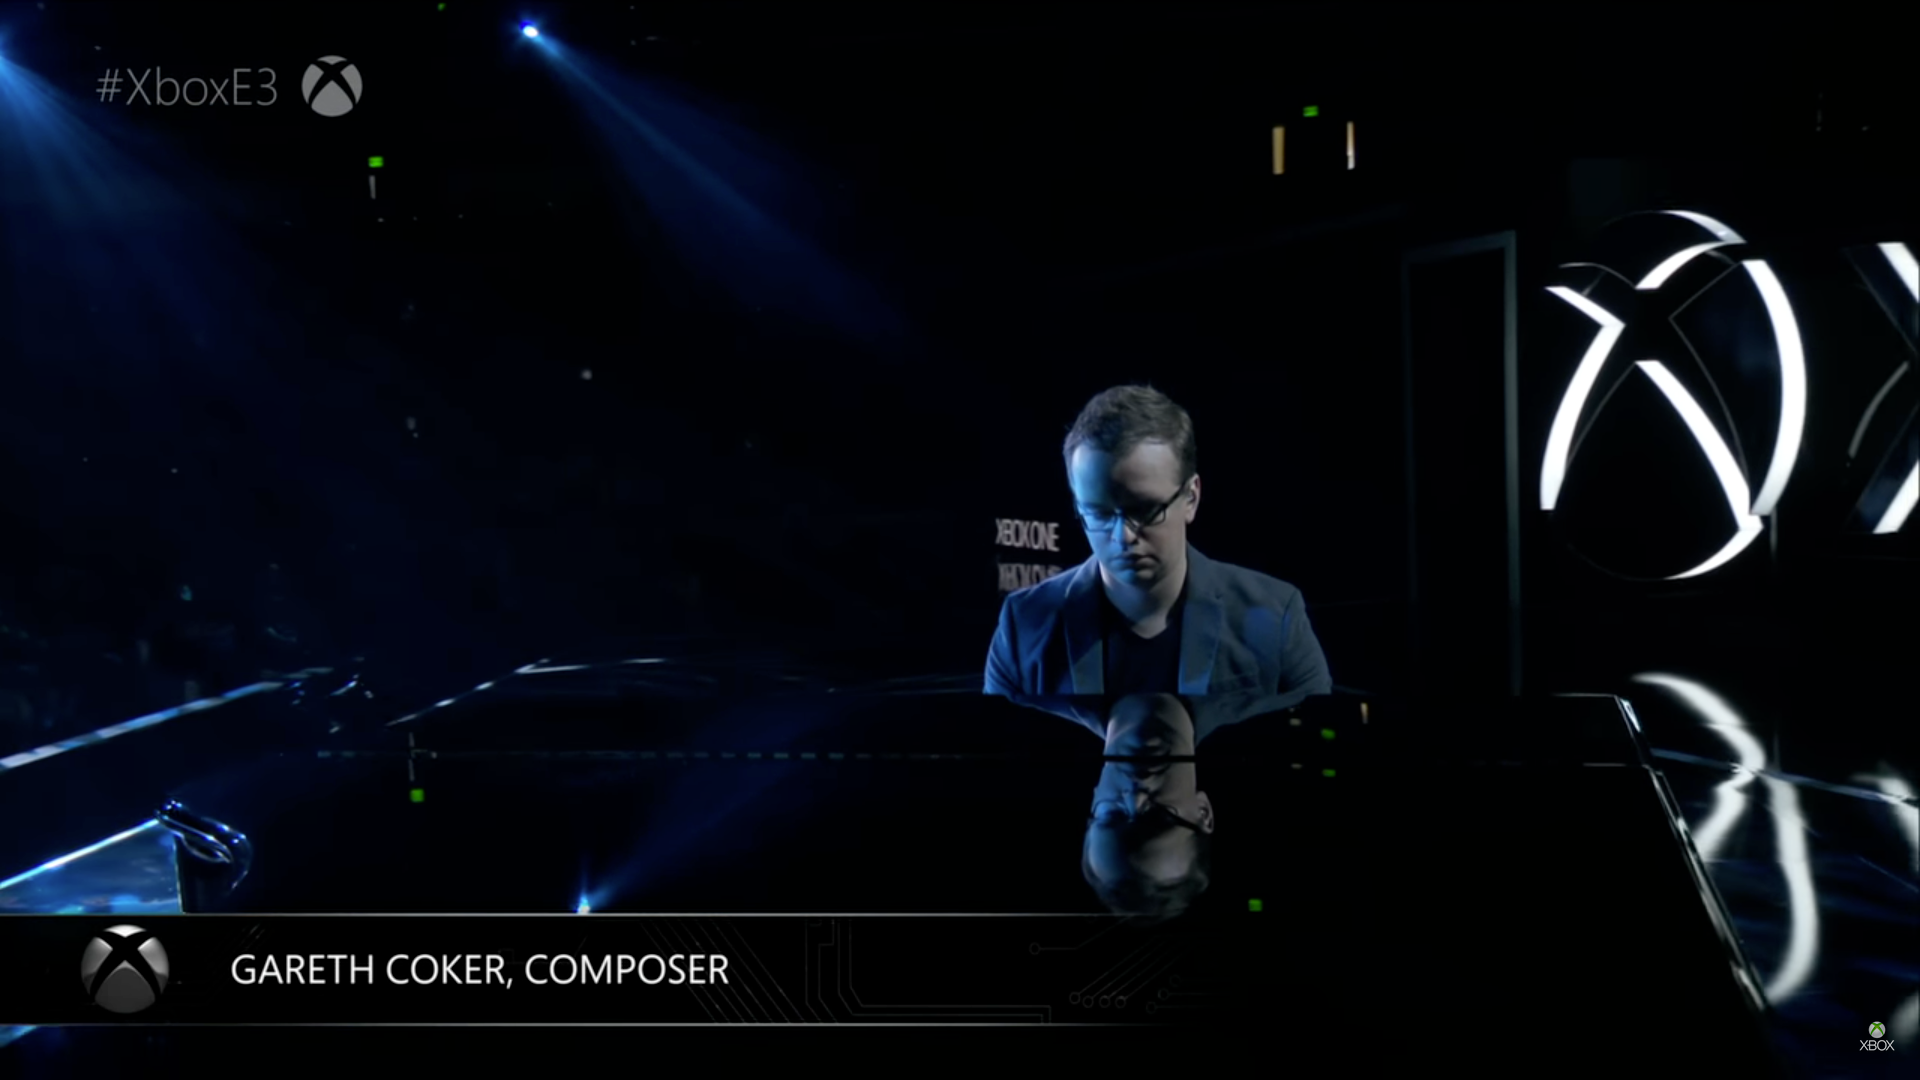 Gareth Coker onstage at E3 2017